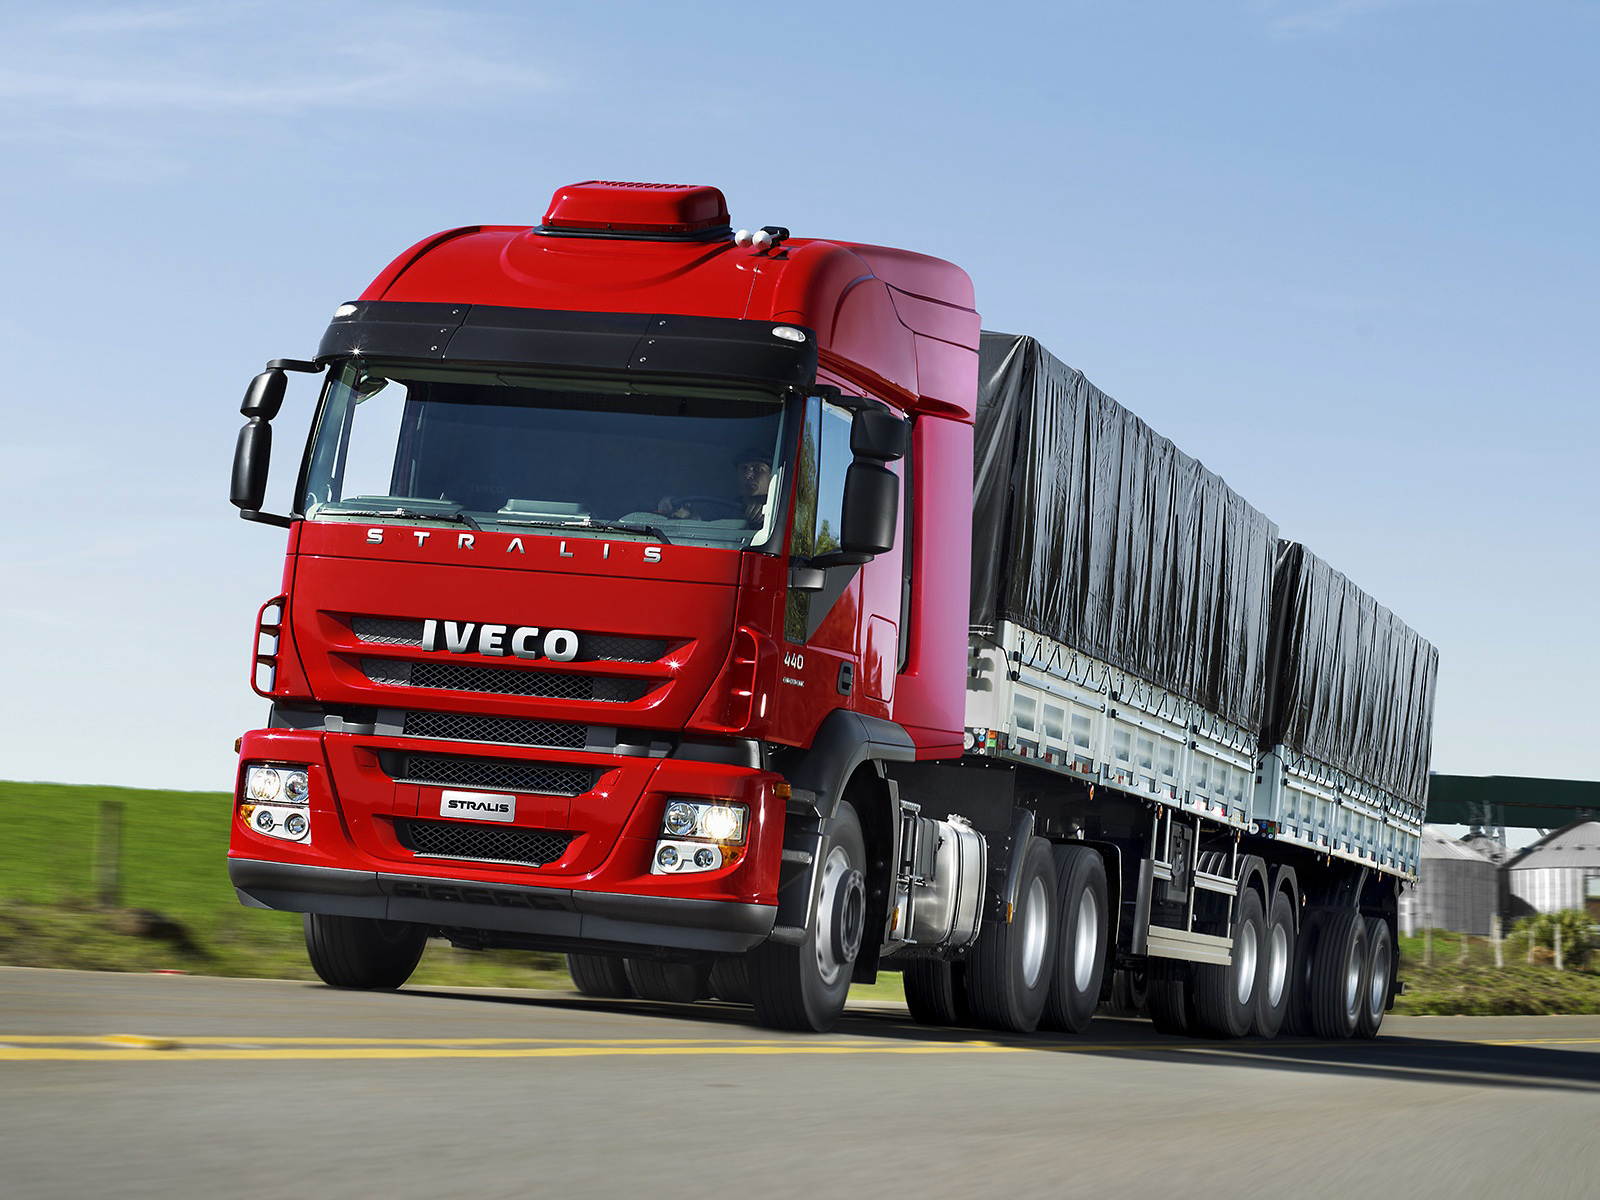 2012 Iveco Stralis 440 6x4 AT BR-spec semi tractor wallpaper